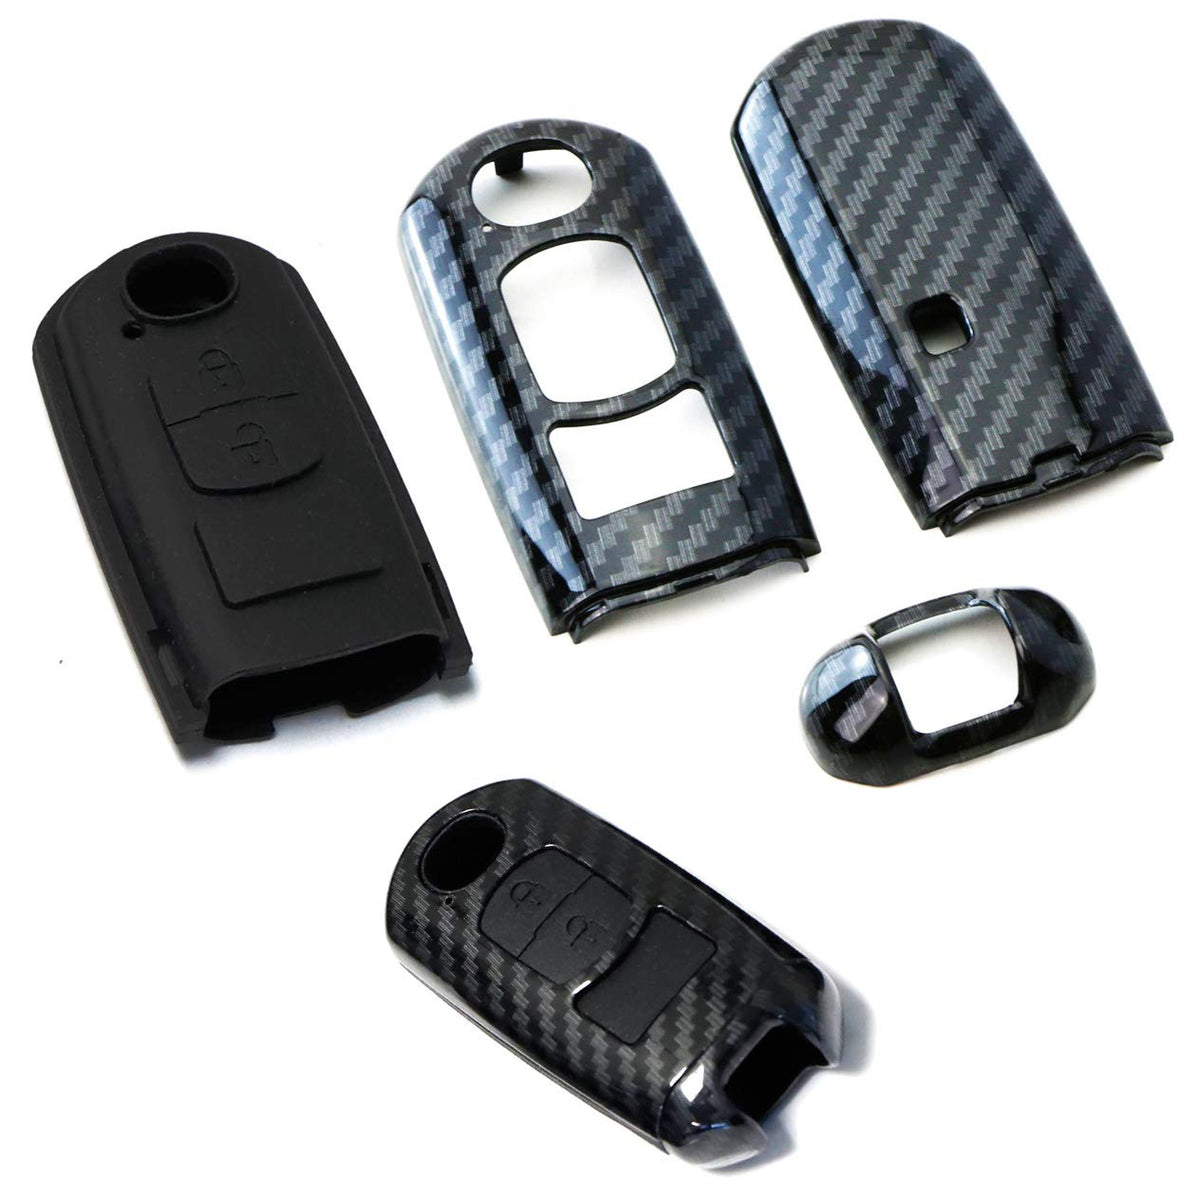 Real Carbon Fiber Remote Key Cover Case for Mazda 3 6 CX5 CX7 from Bospeed